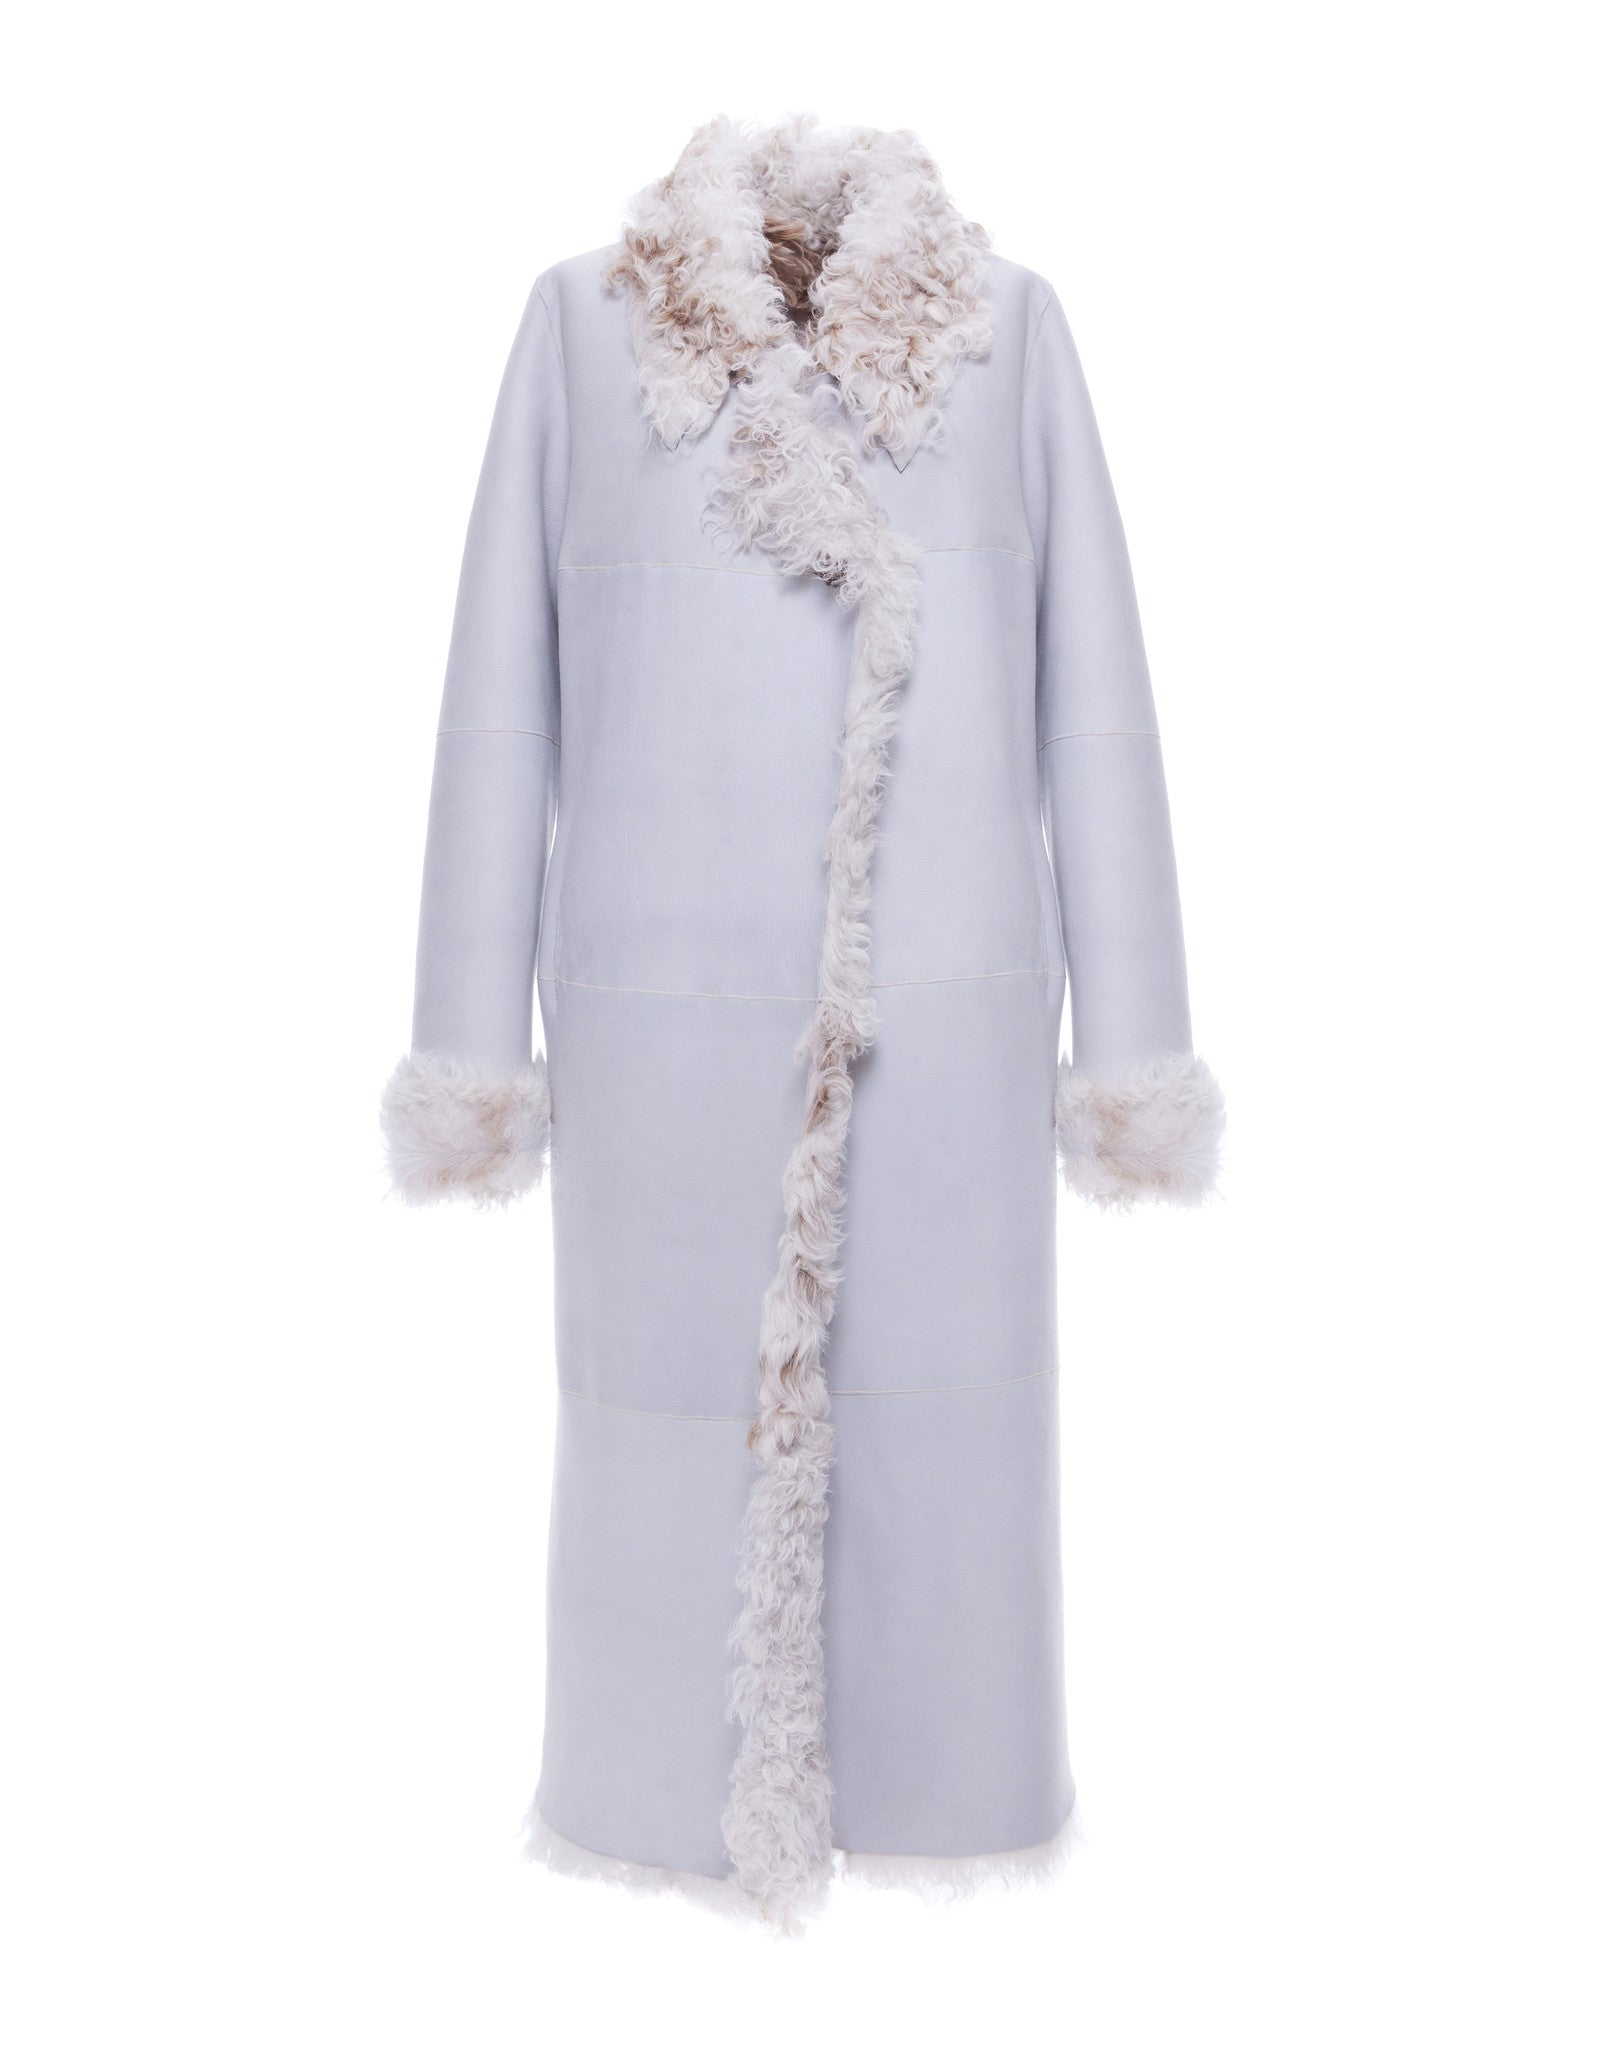 Long Coat - Elena Benarroch - Coat - TOPGEARNY